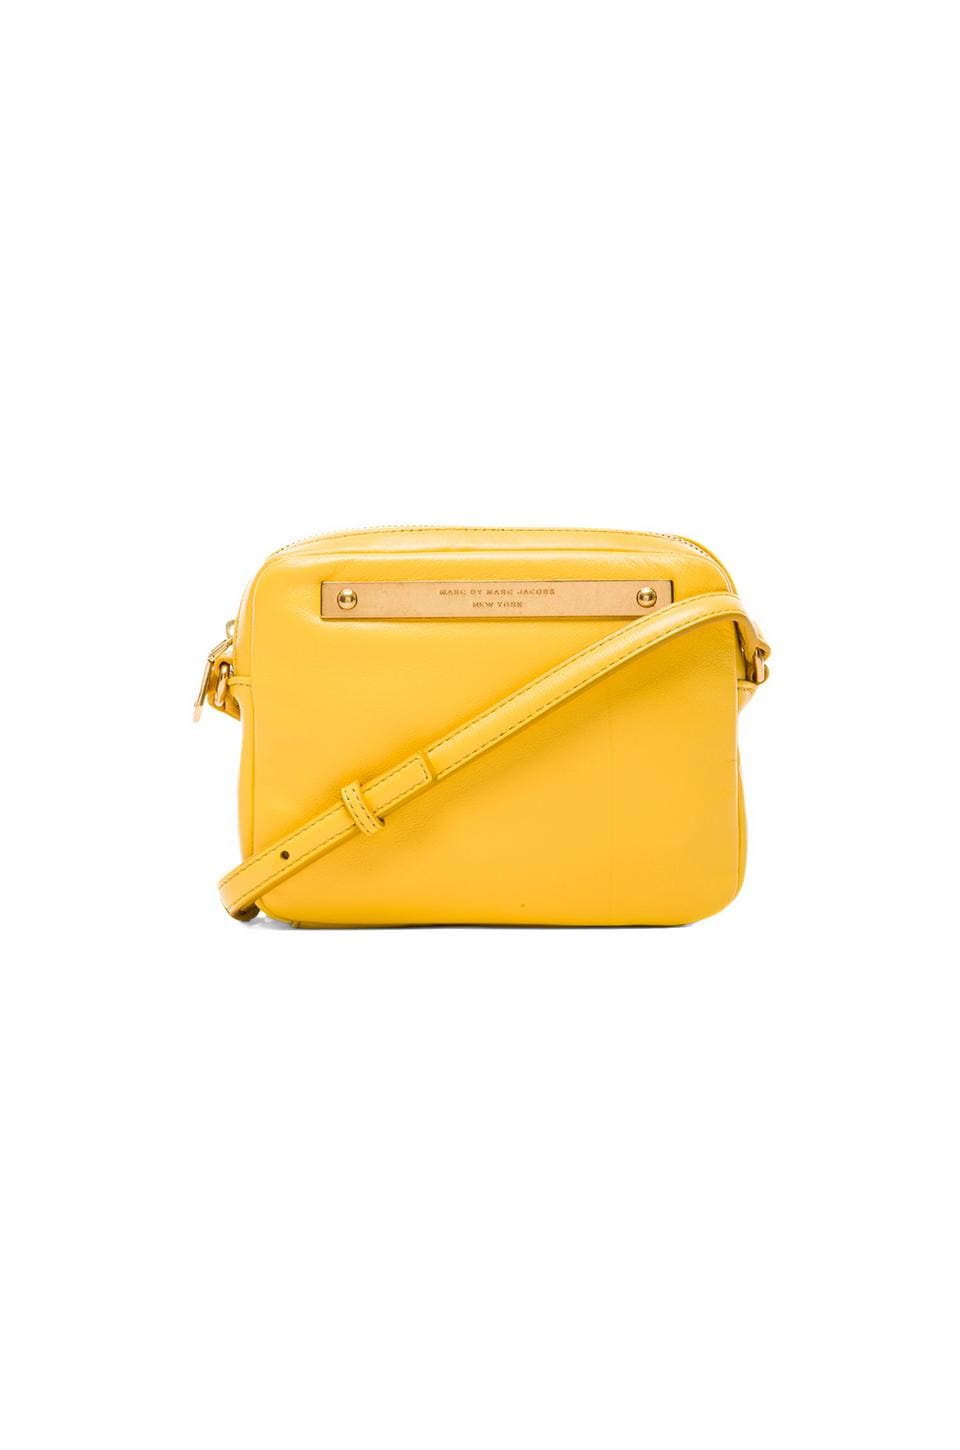 Marc by Marc Jacobs Goodbye Columbus Mireu Crossbody in Canary Yellow